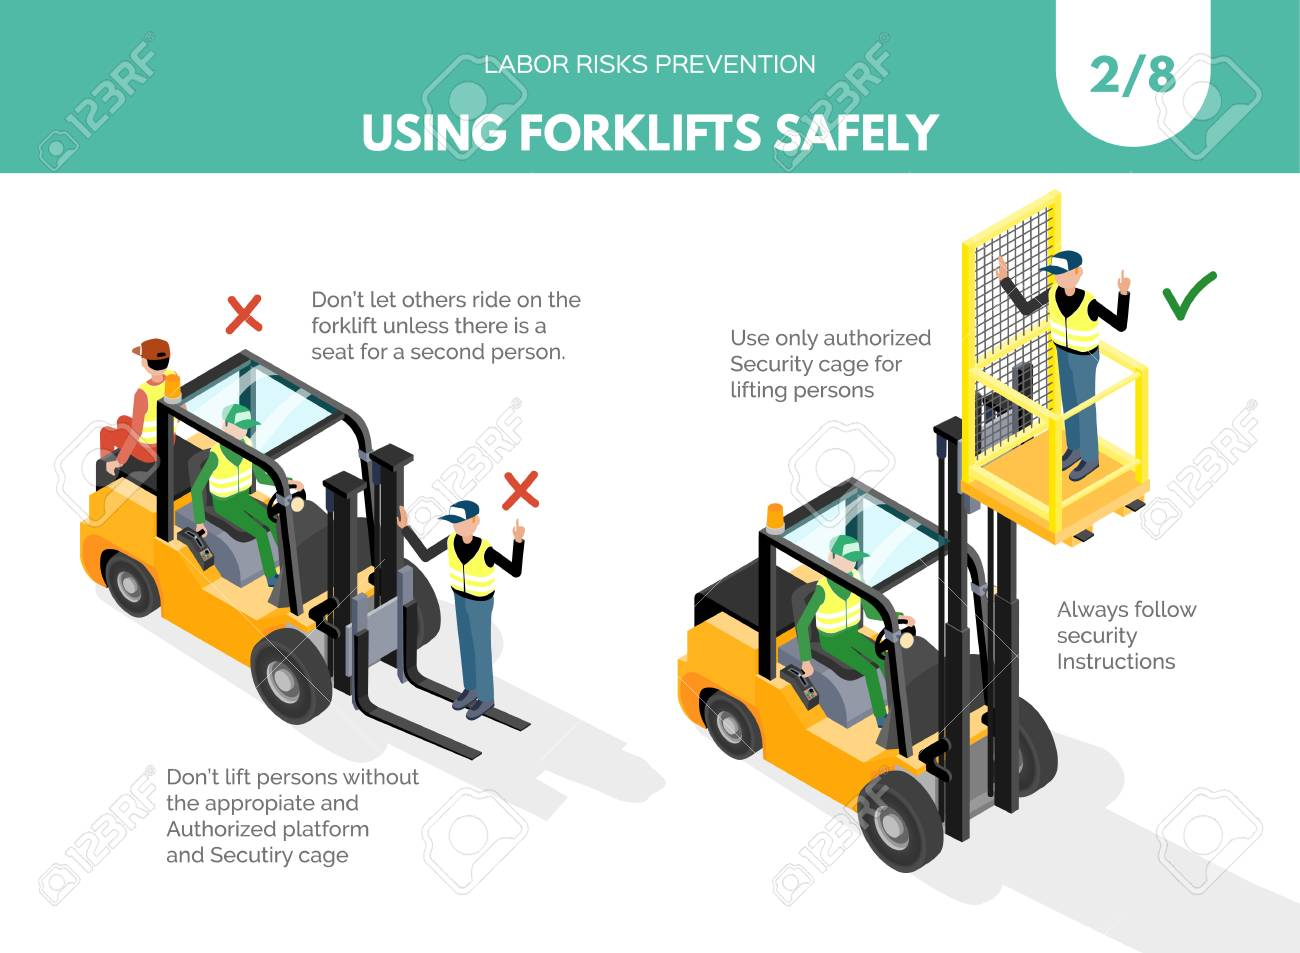 Recomendatios about using forklifts safely. Labor risks prevention concept. Isometric design isolated on white background. Vector illustration. Set 2 of 8. - 110390281